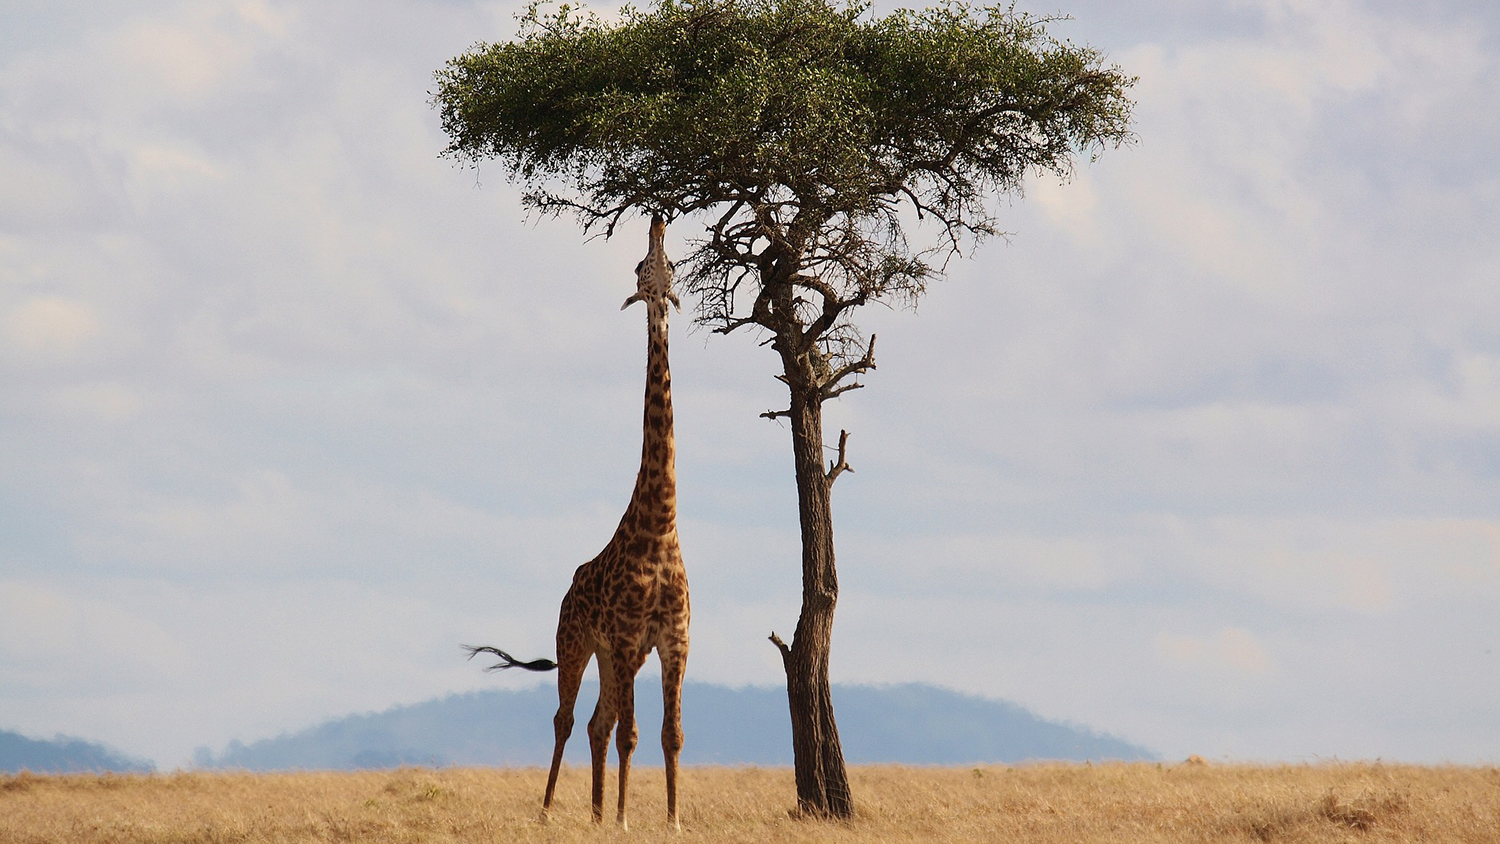 Photo of giraffe and tree in Kenya.